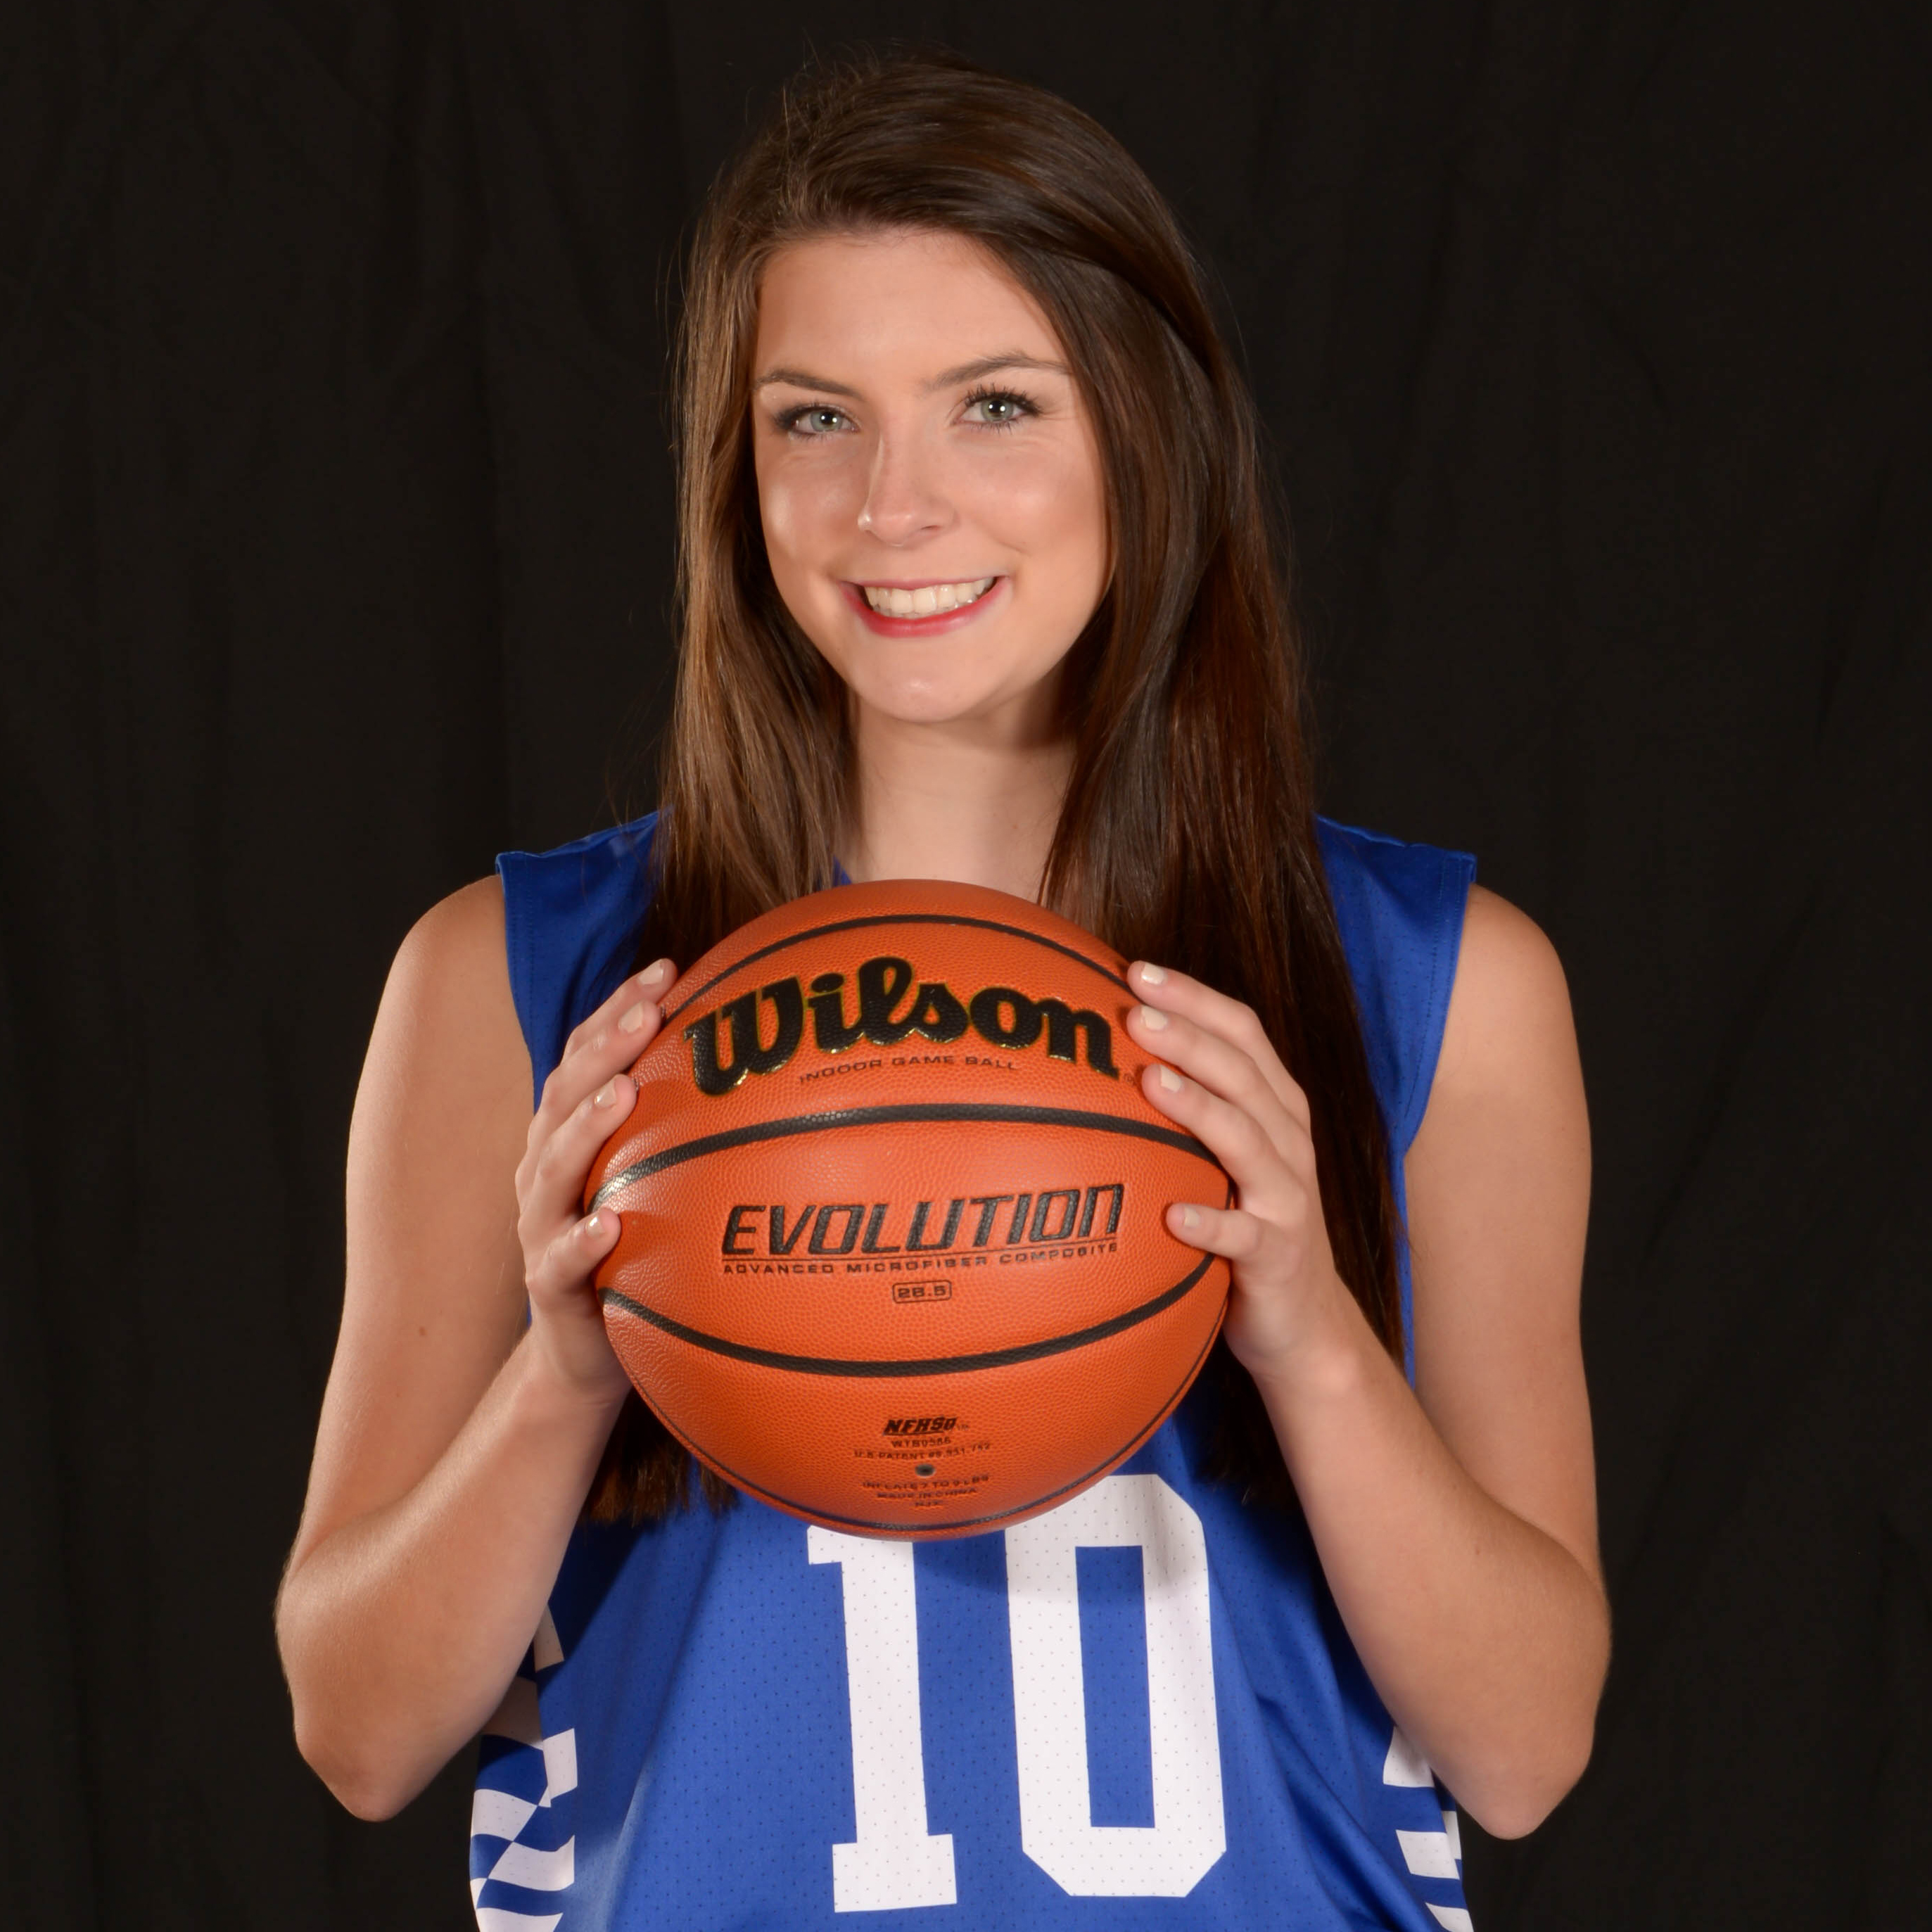 10-brooke-elliott-senior-point-guard